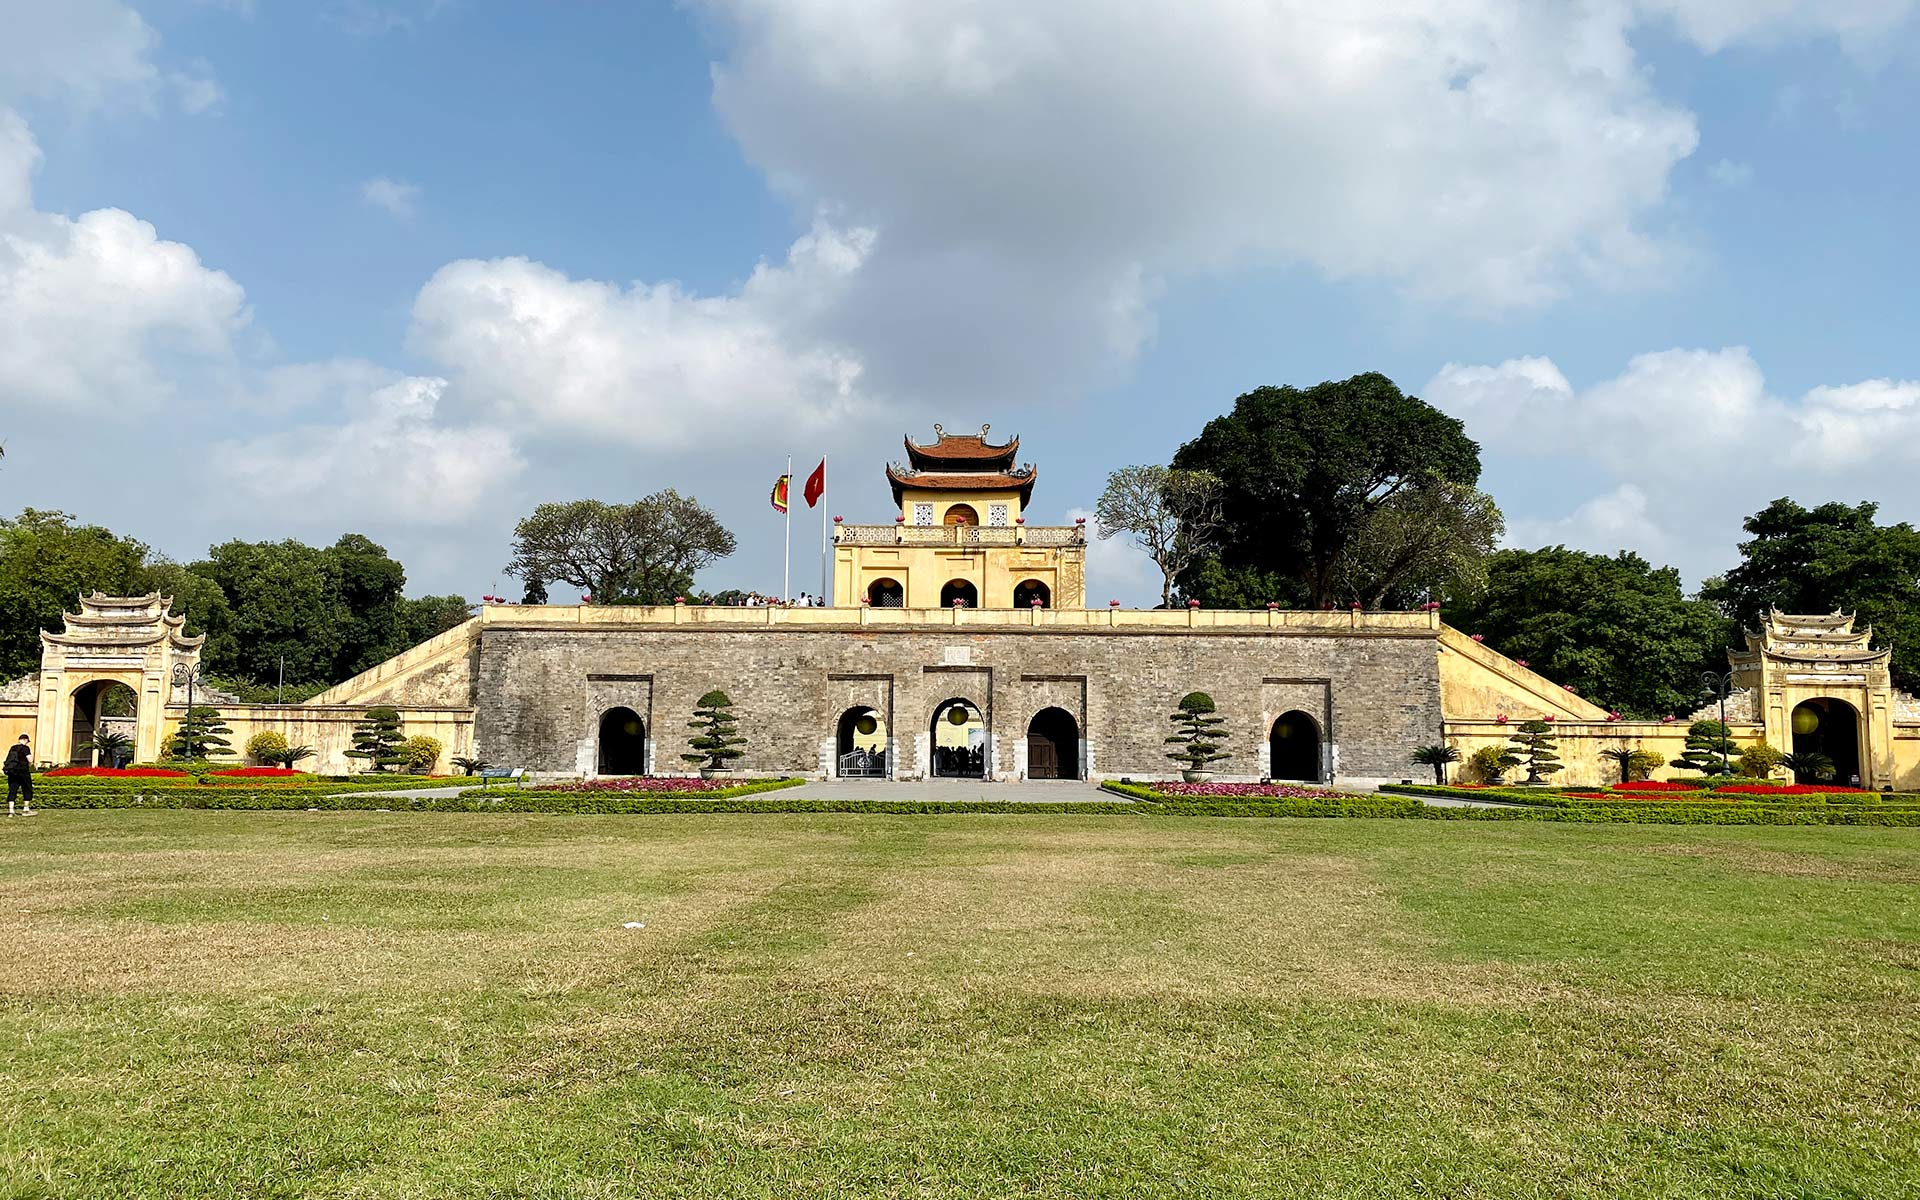 South Gate or Main Gate (Doan Mon)